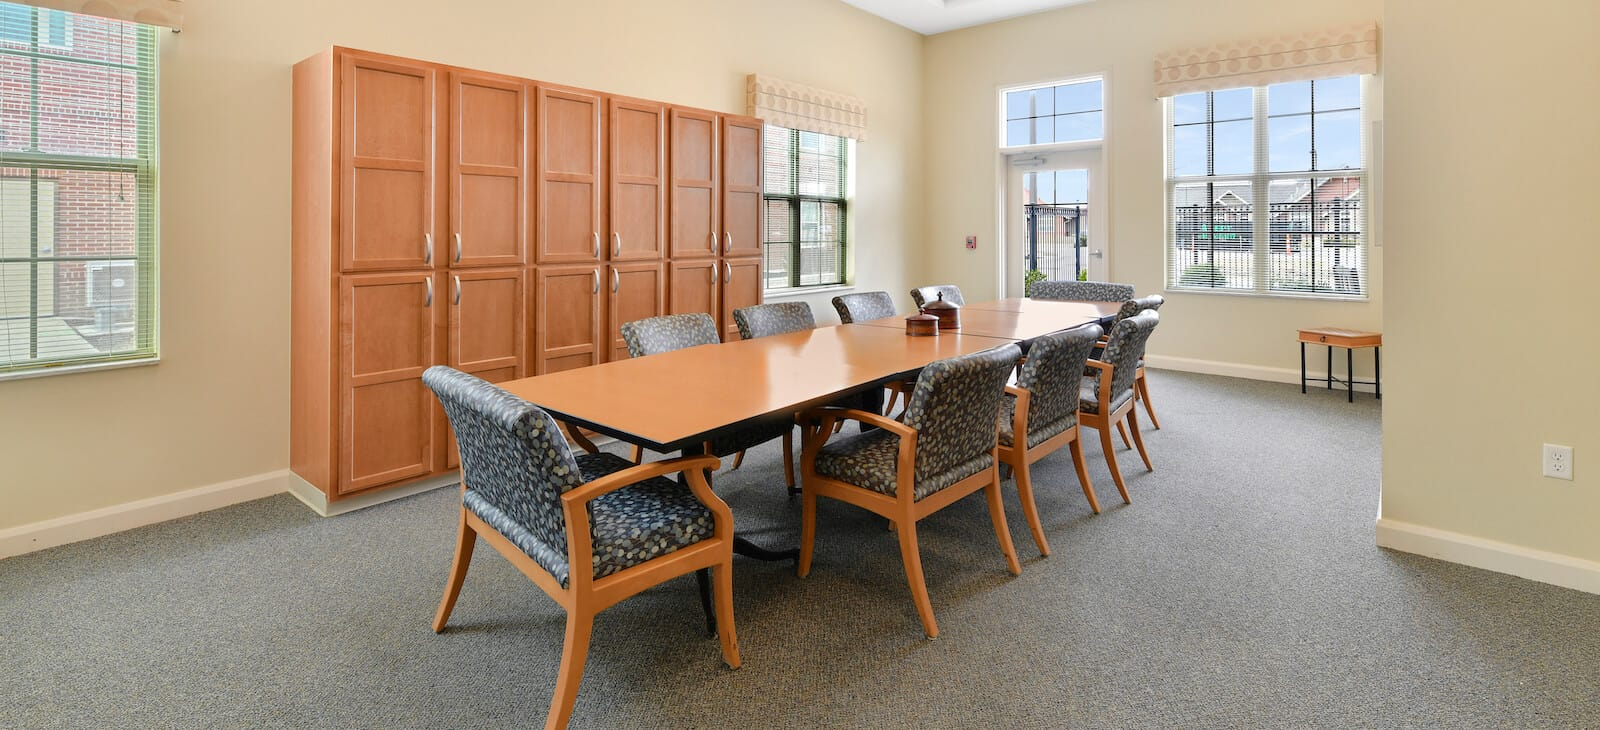 Avondale conference room